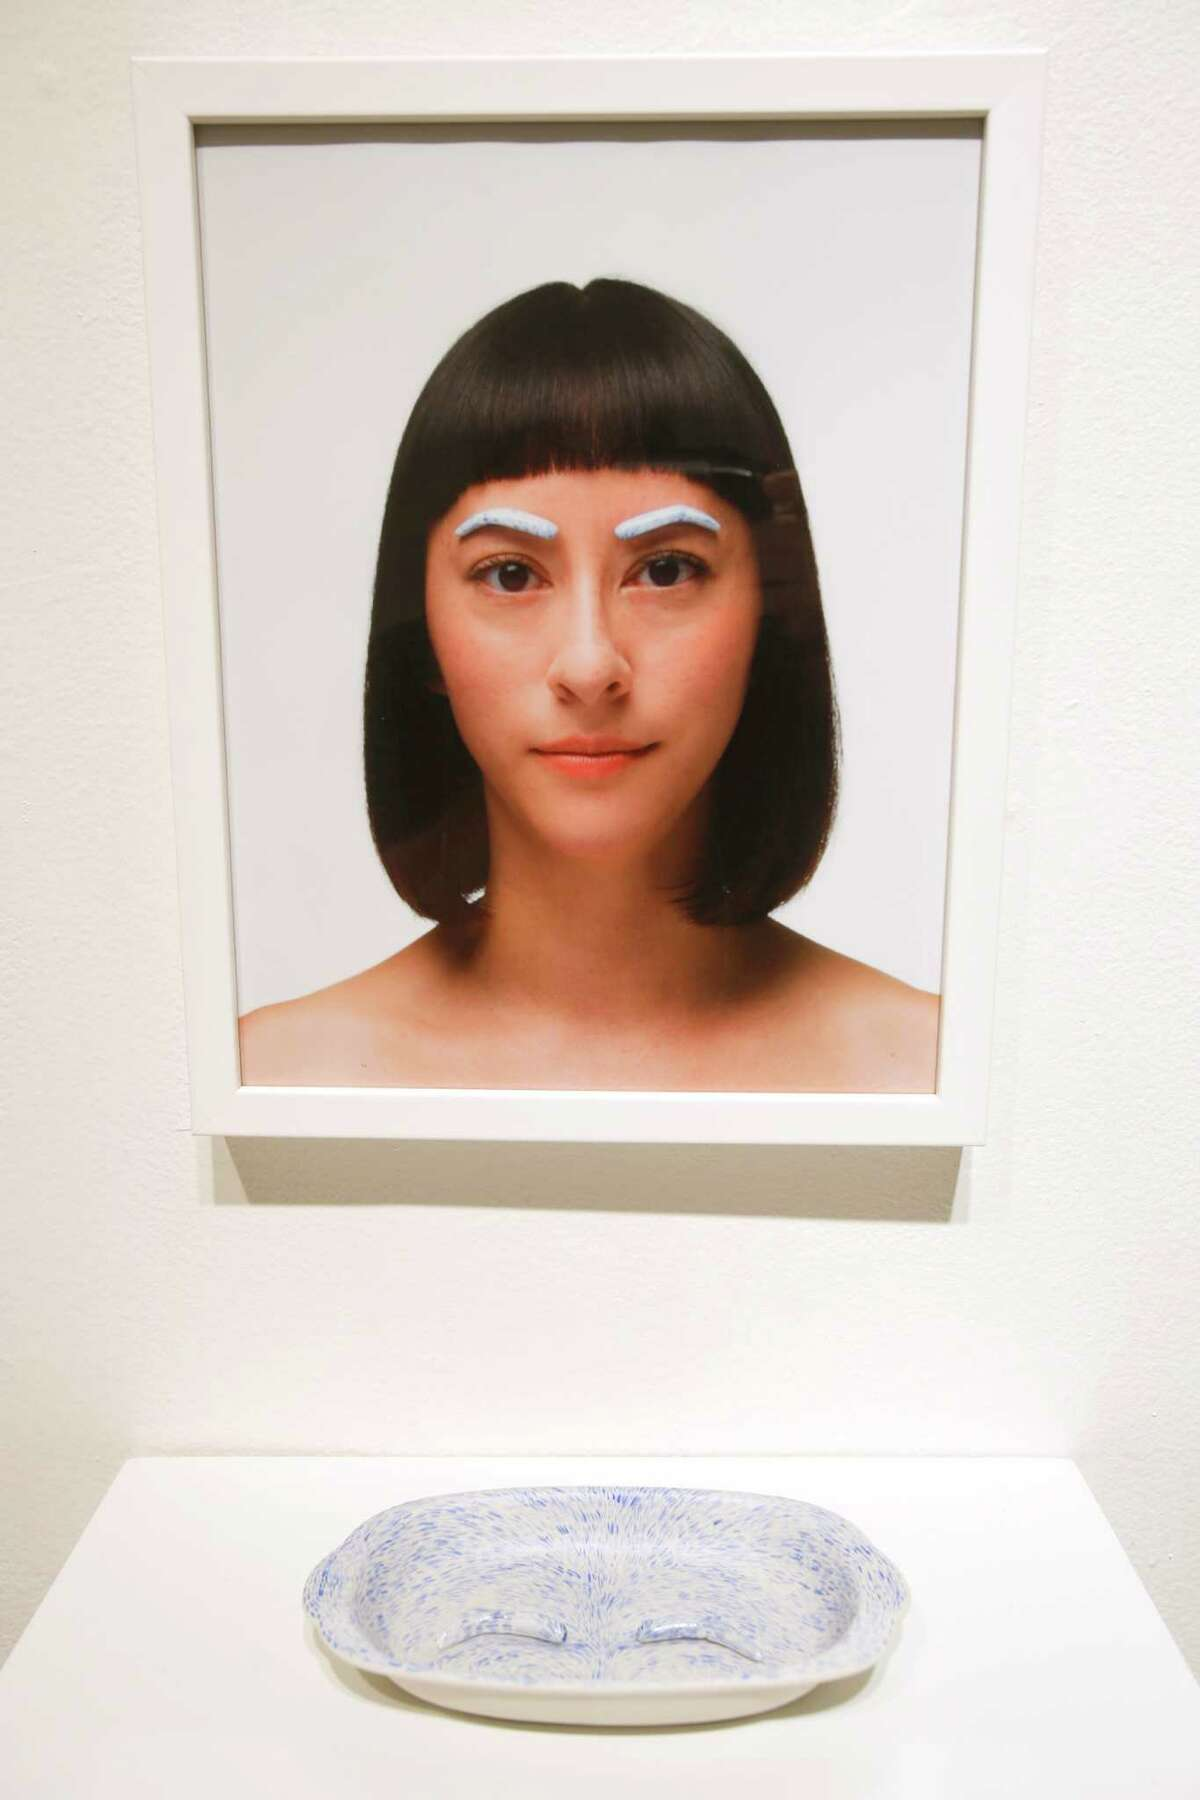 Datchuk's eyebrow piece from the Guadalupe Cultural Art Center's CAM Perennial exhibition.